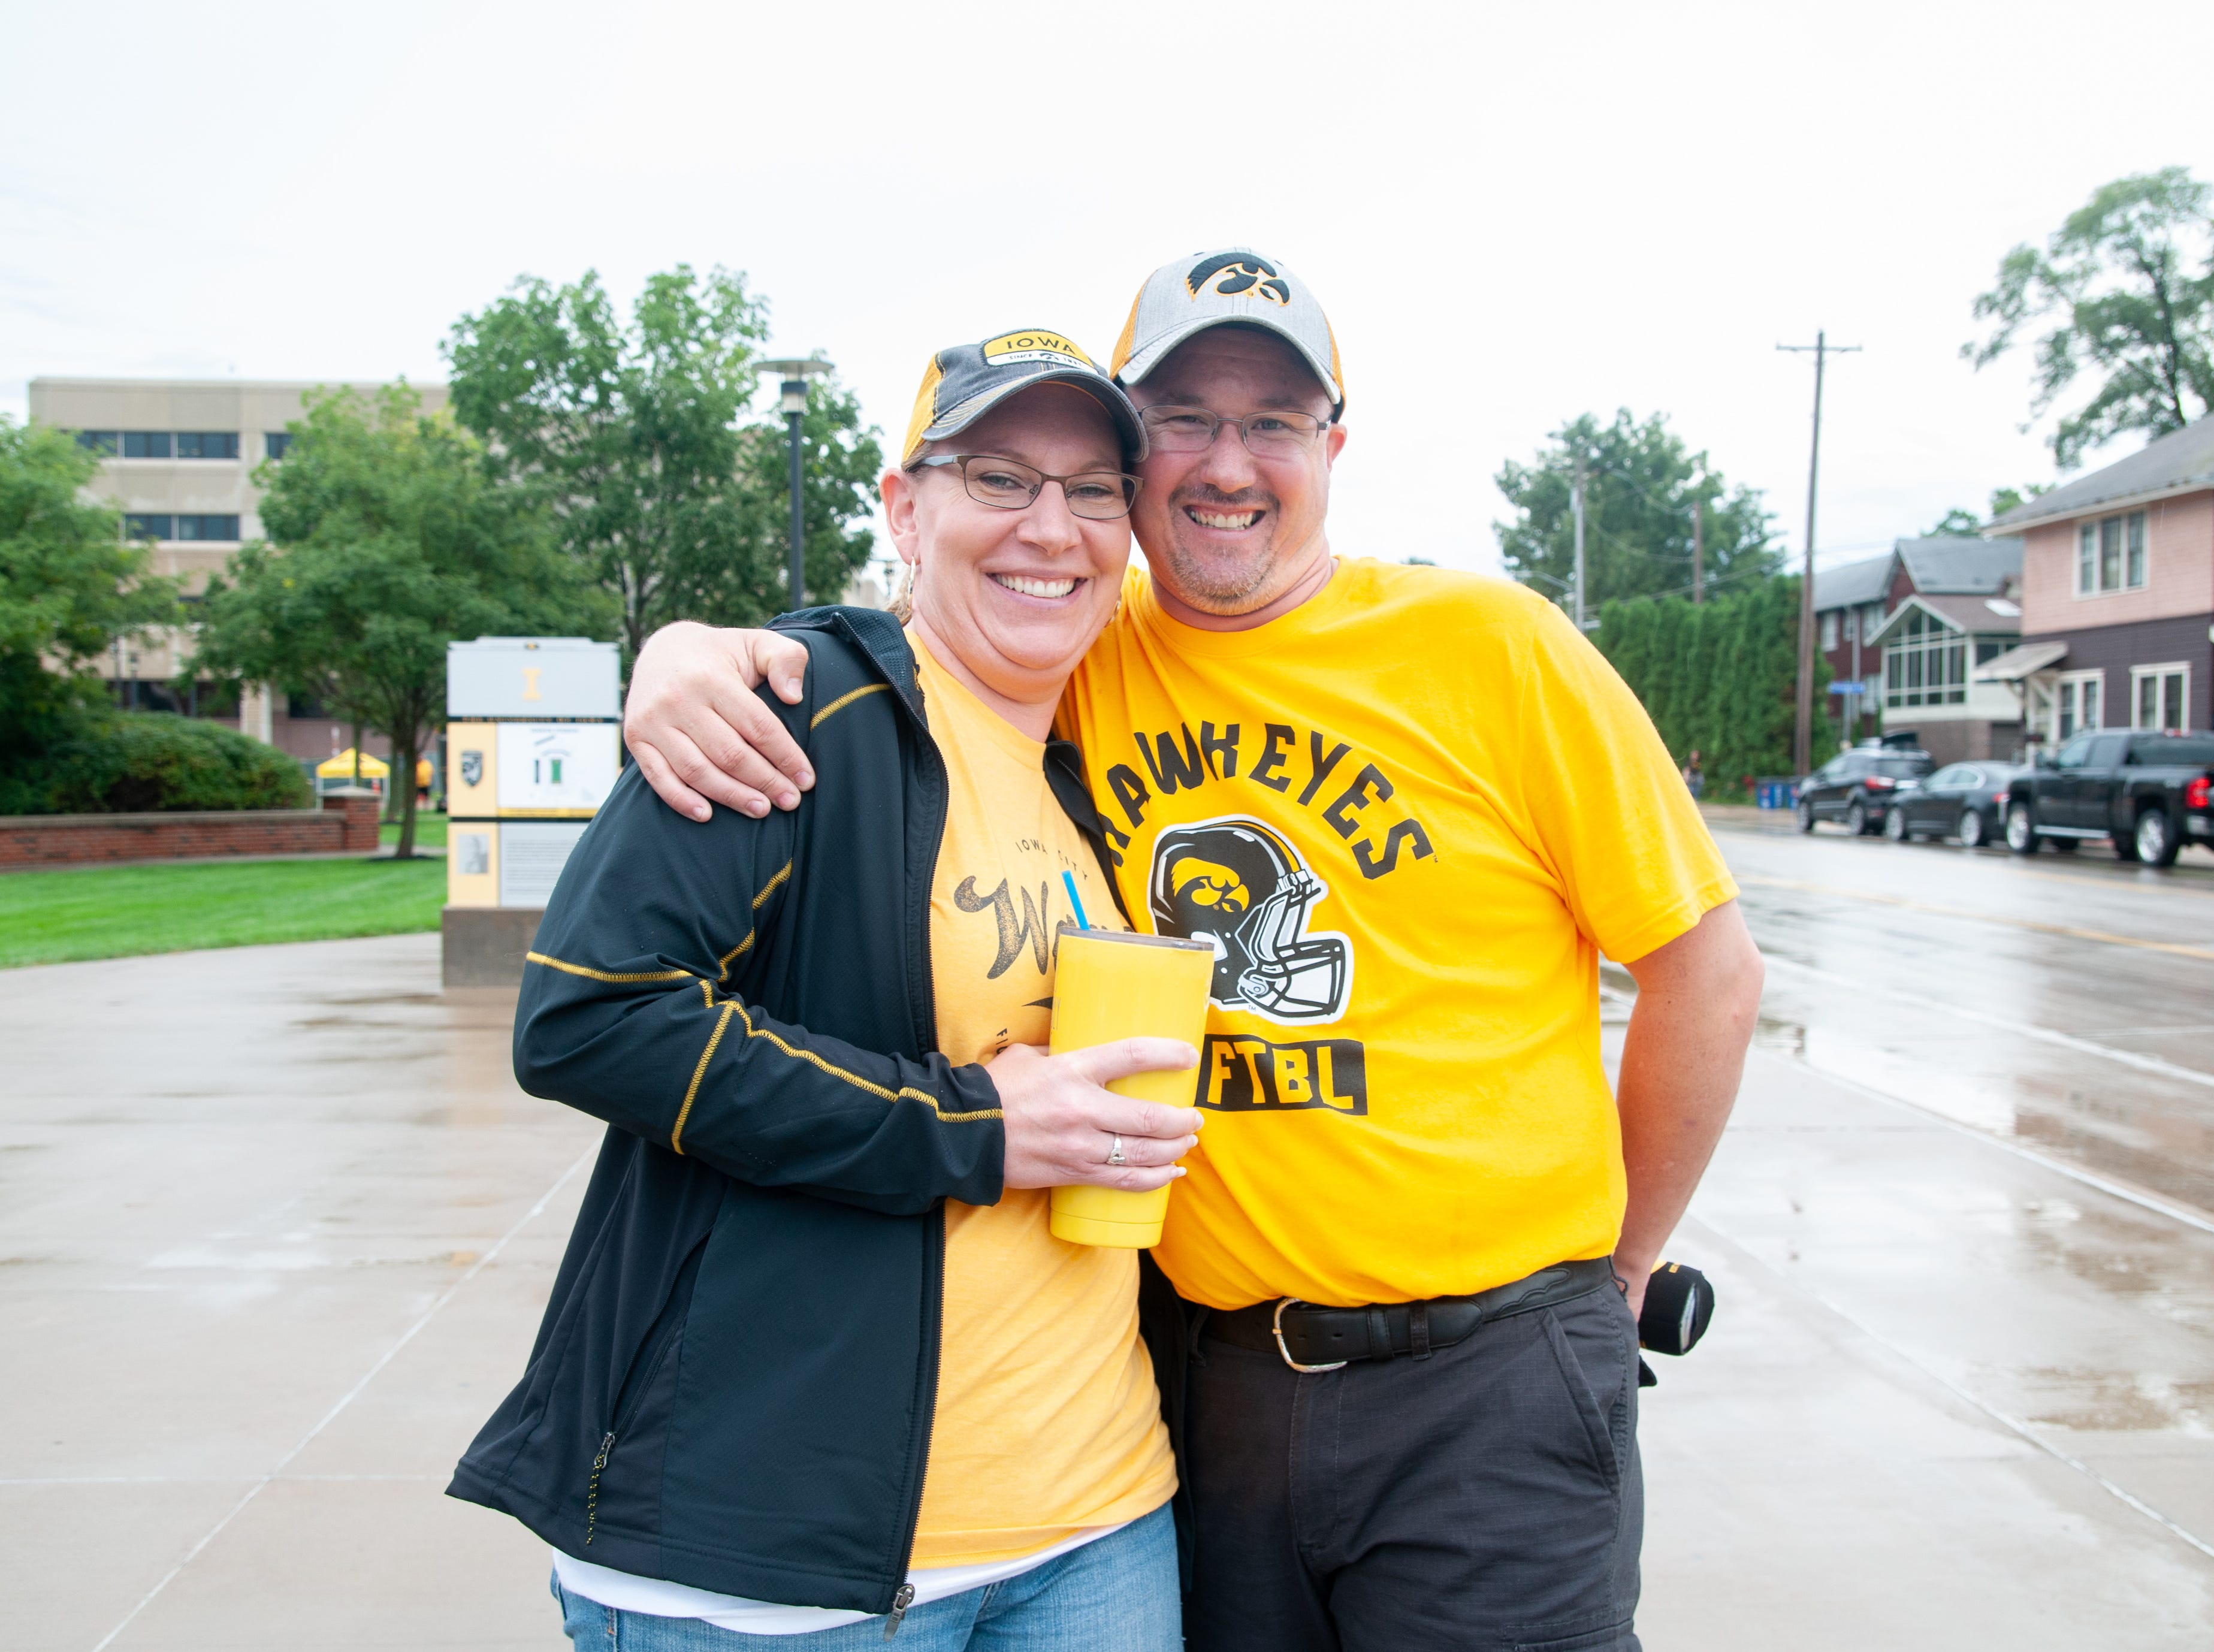 Alyssa Linnenbrink, 40, (left), and John Lehman, 38, of the Quad Cities, Saturday, Sept. 1, 2018, while tailgating before the Iowa game against Northern Illinois in Iowa City.